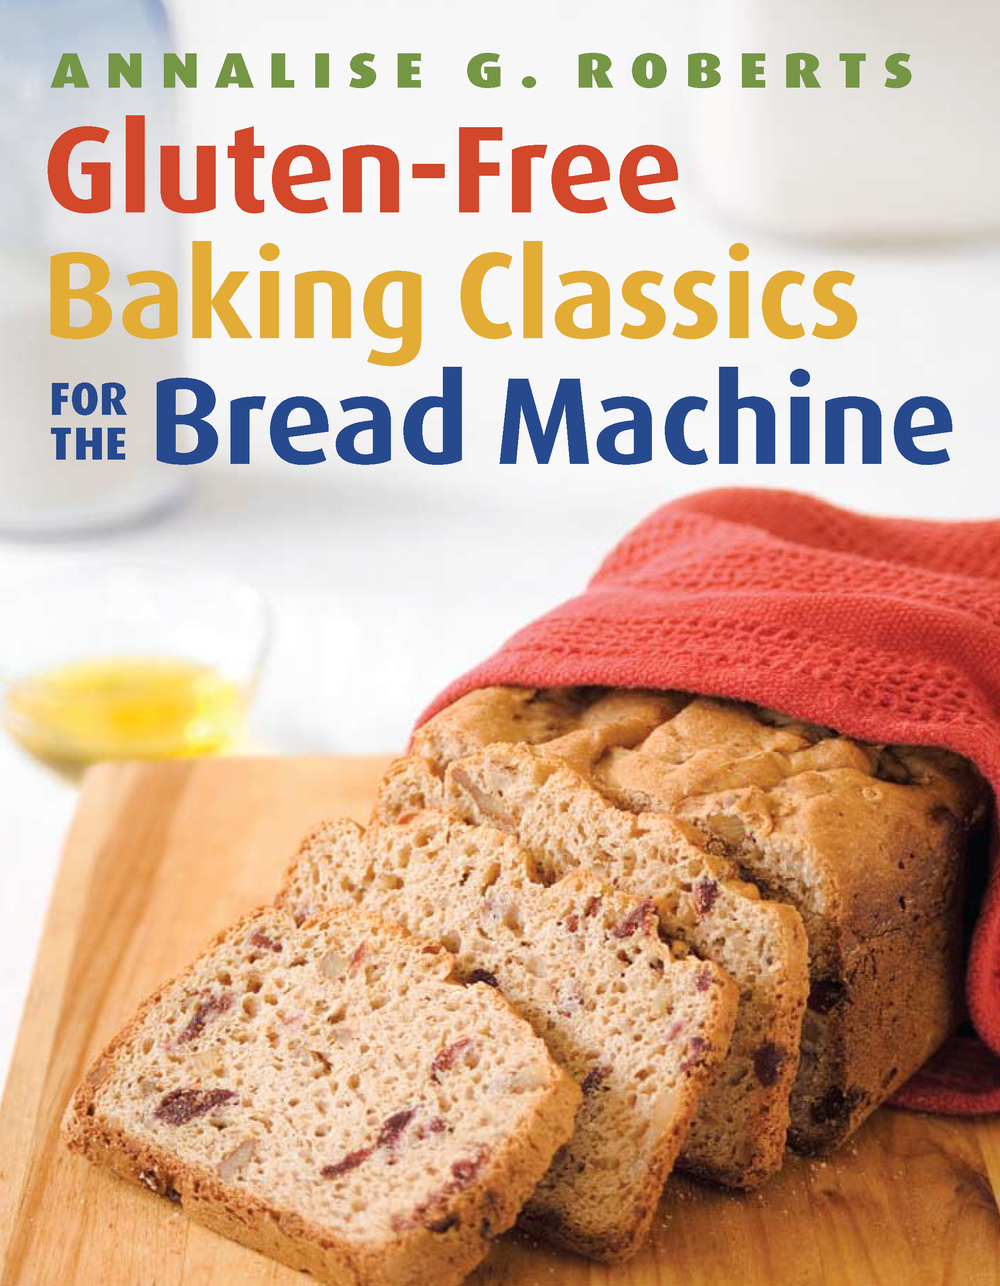 Gluten-Free Bread Machine_Page_01.png